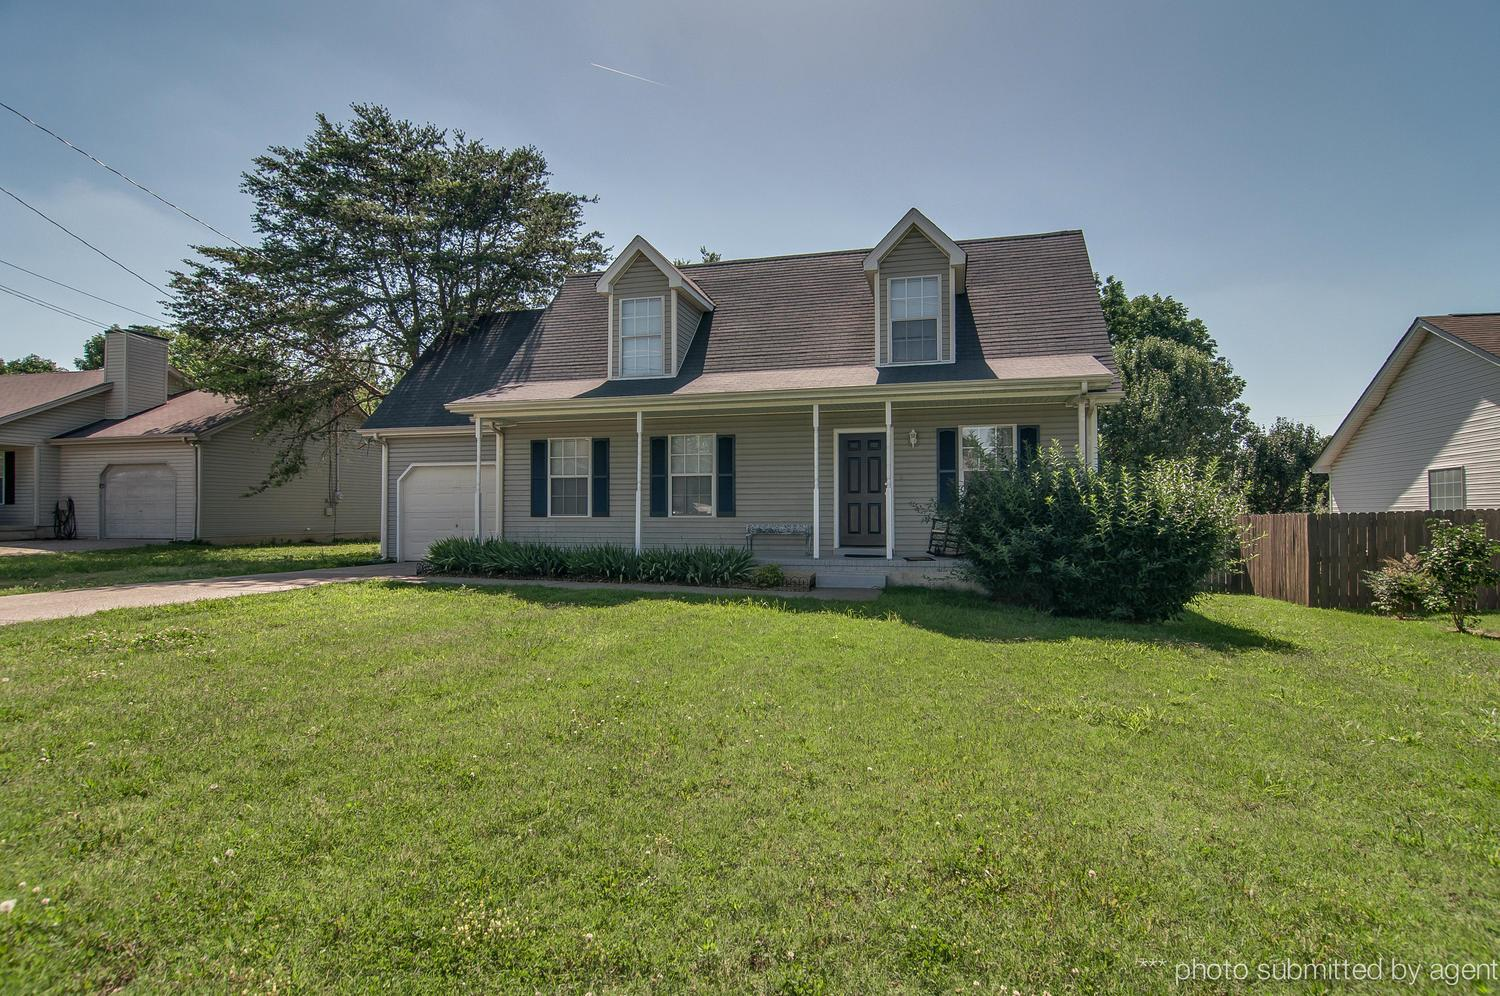 211 Blue Lake Ln, LaVergne, TN 37086